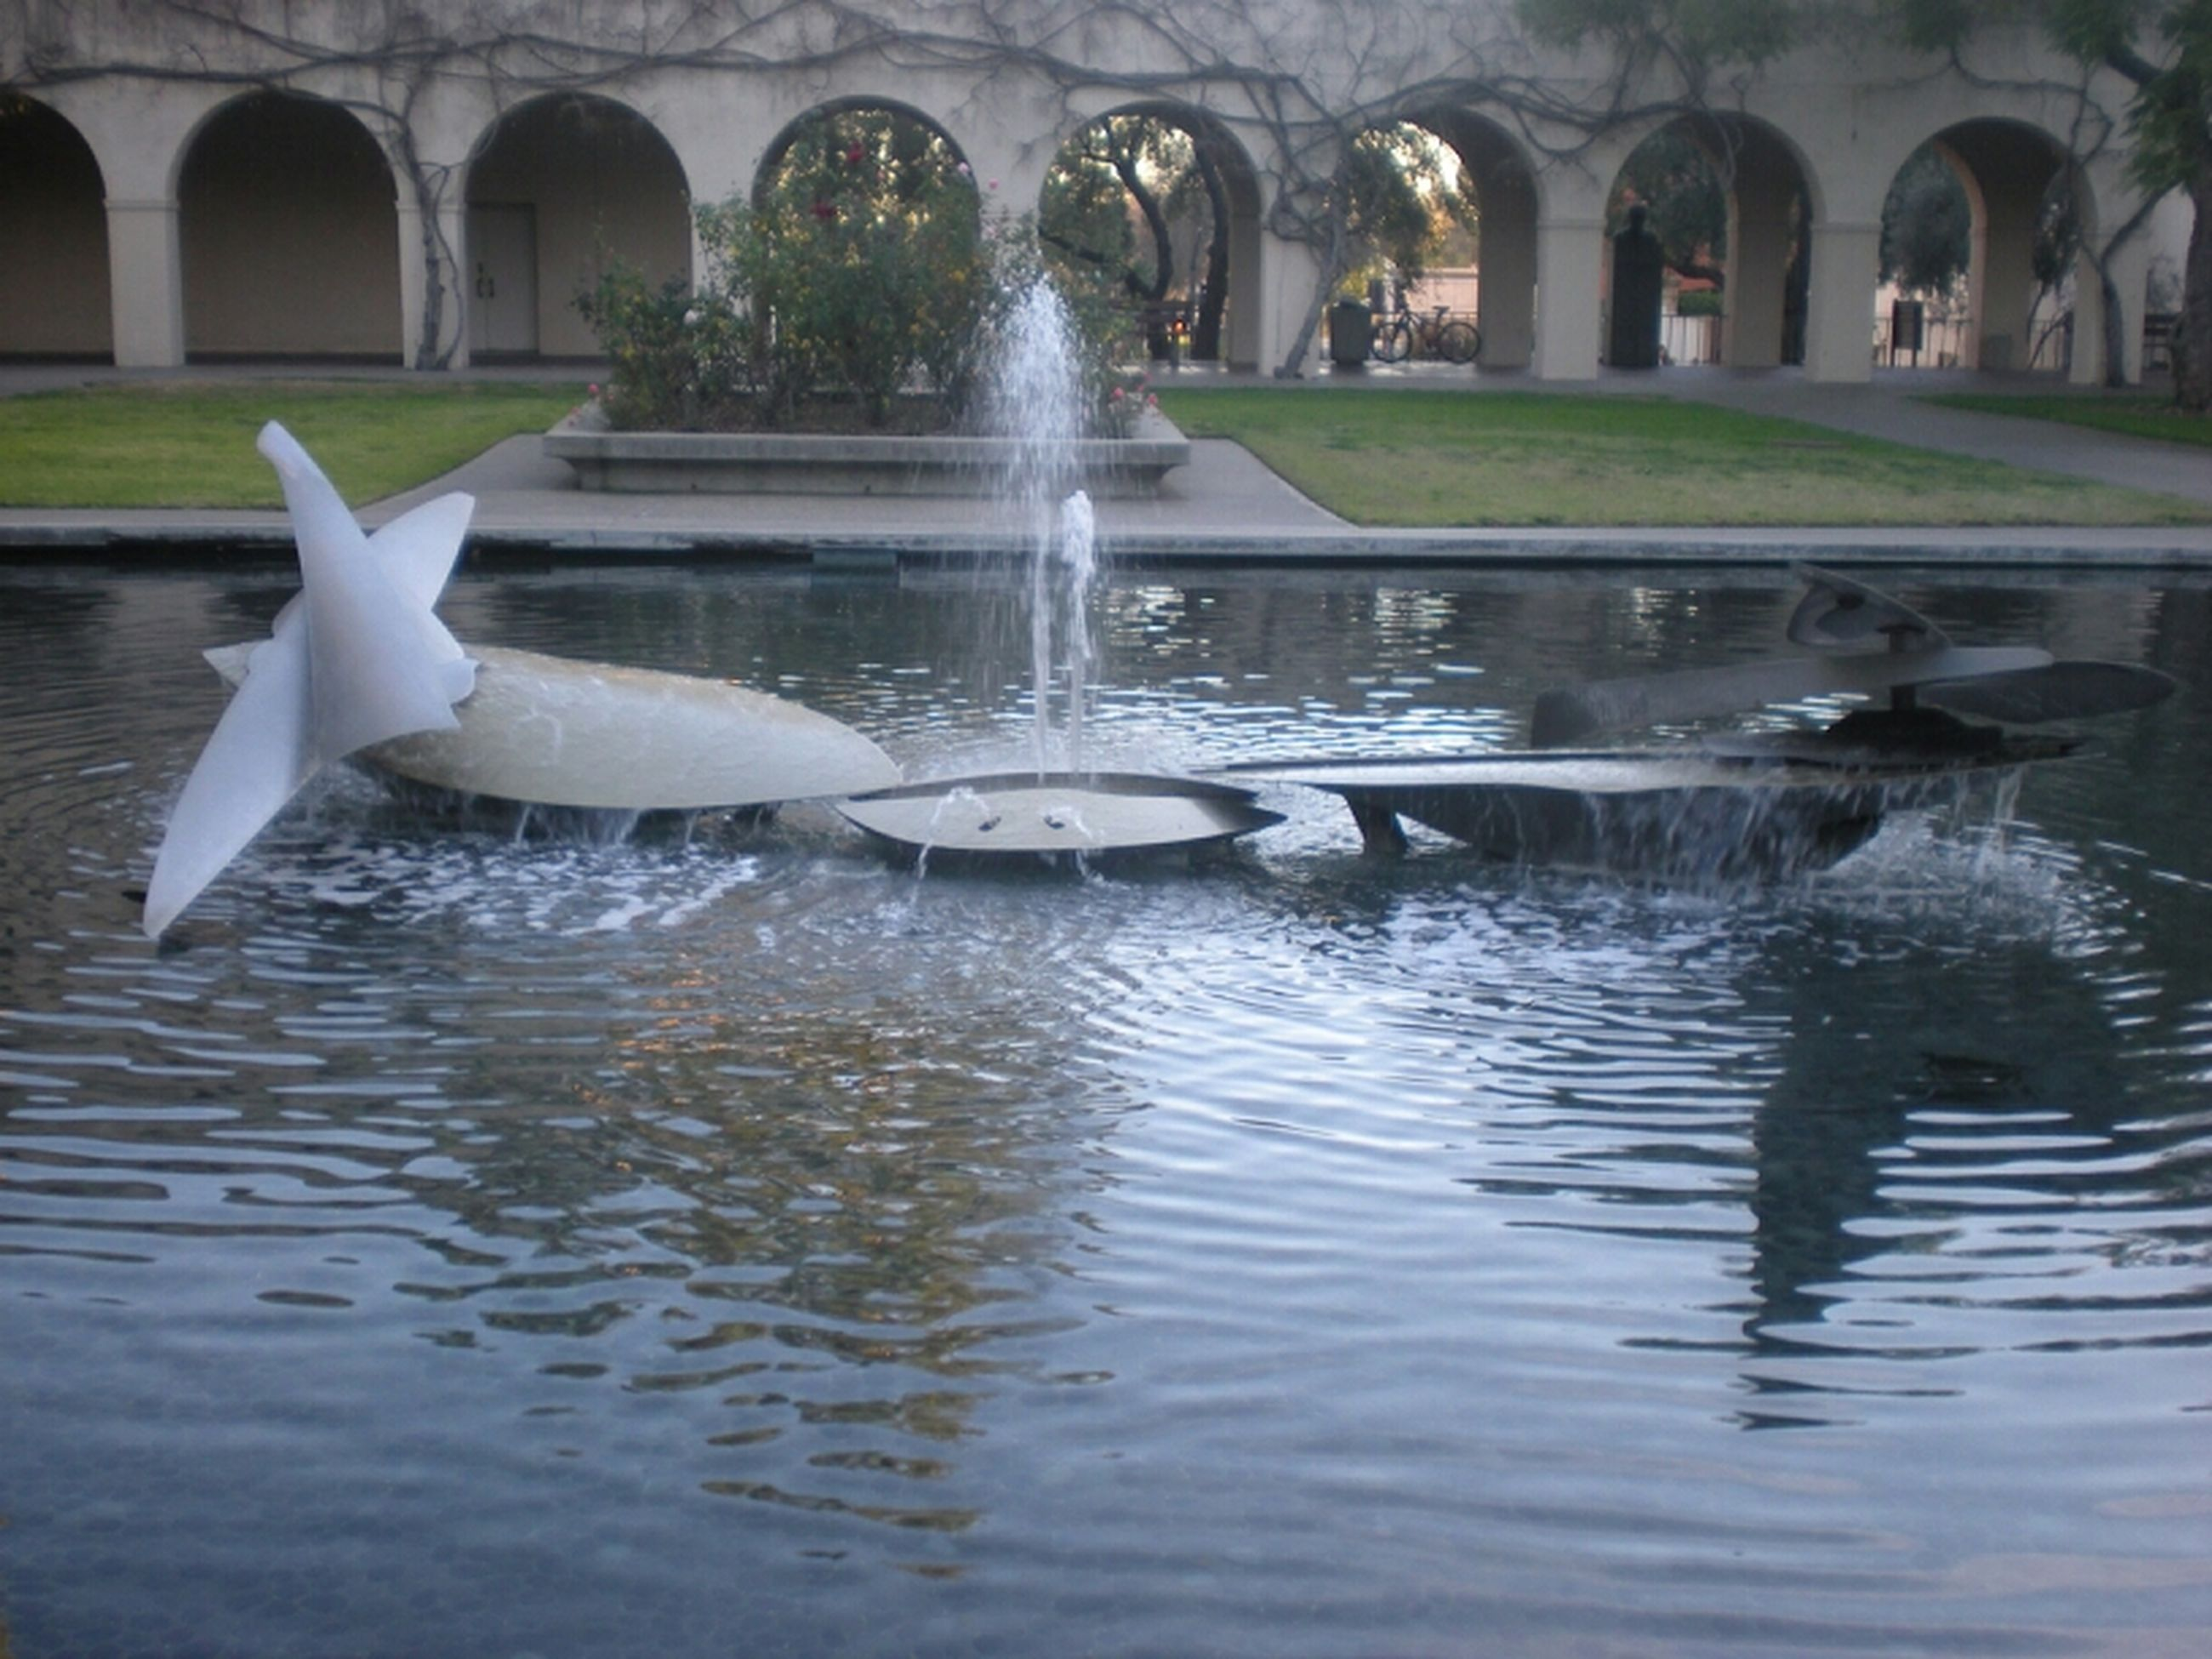 water, bird, animal themes, animals in the wild, wildlife, reflection, fountain, pond, waterfront, built structure, swan, architecture, swimming, lake, motion, nature, two animals, outdoors, day, no people